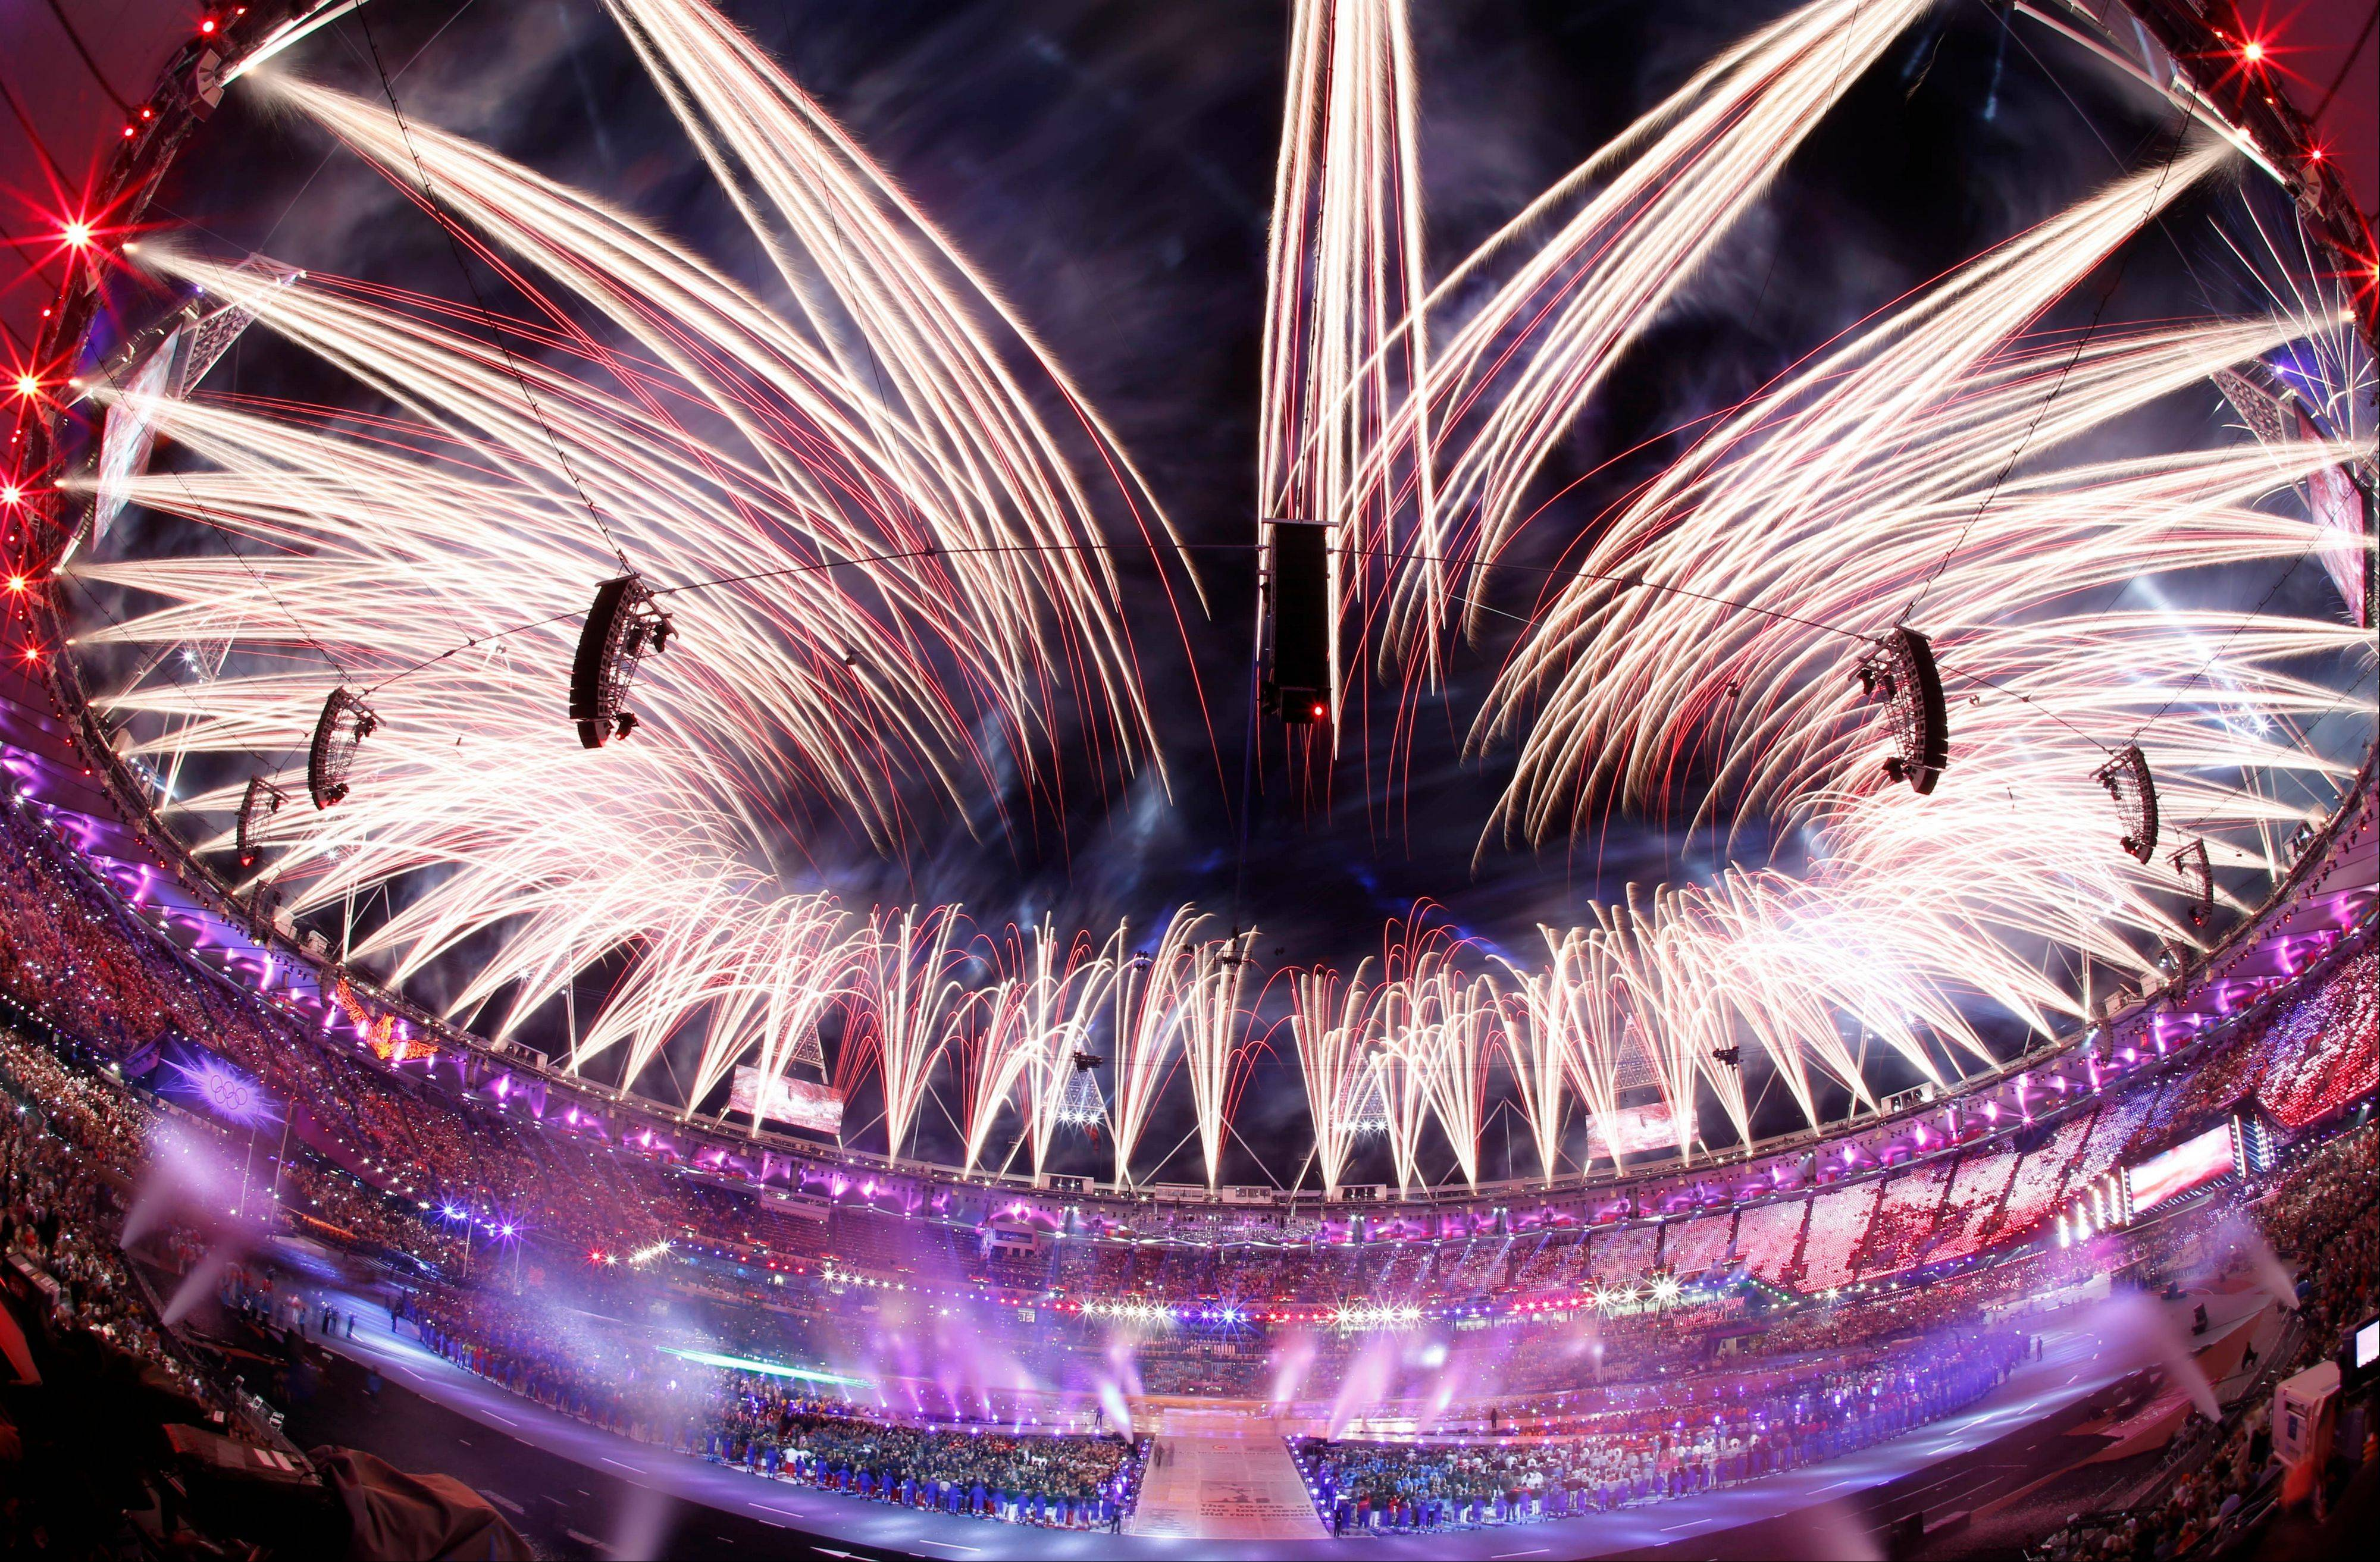 Olympics come to rocking end with a pop party